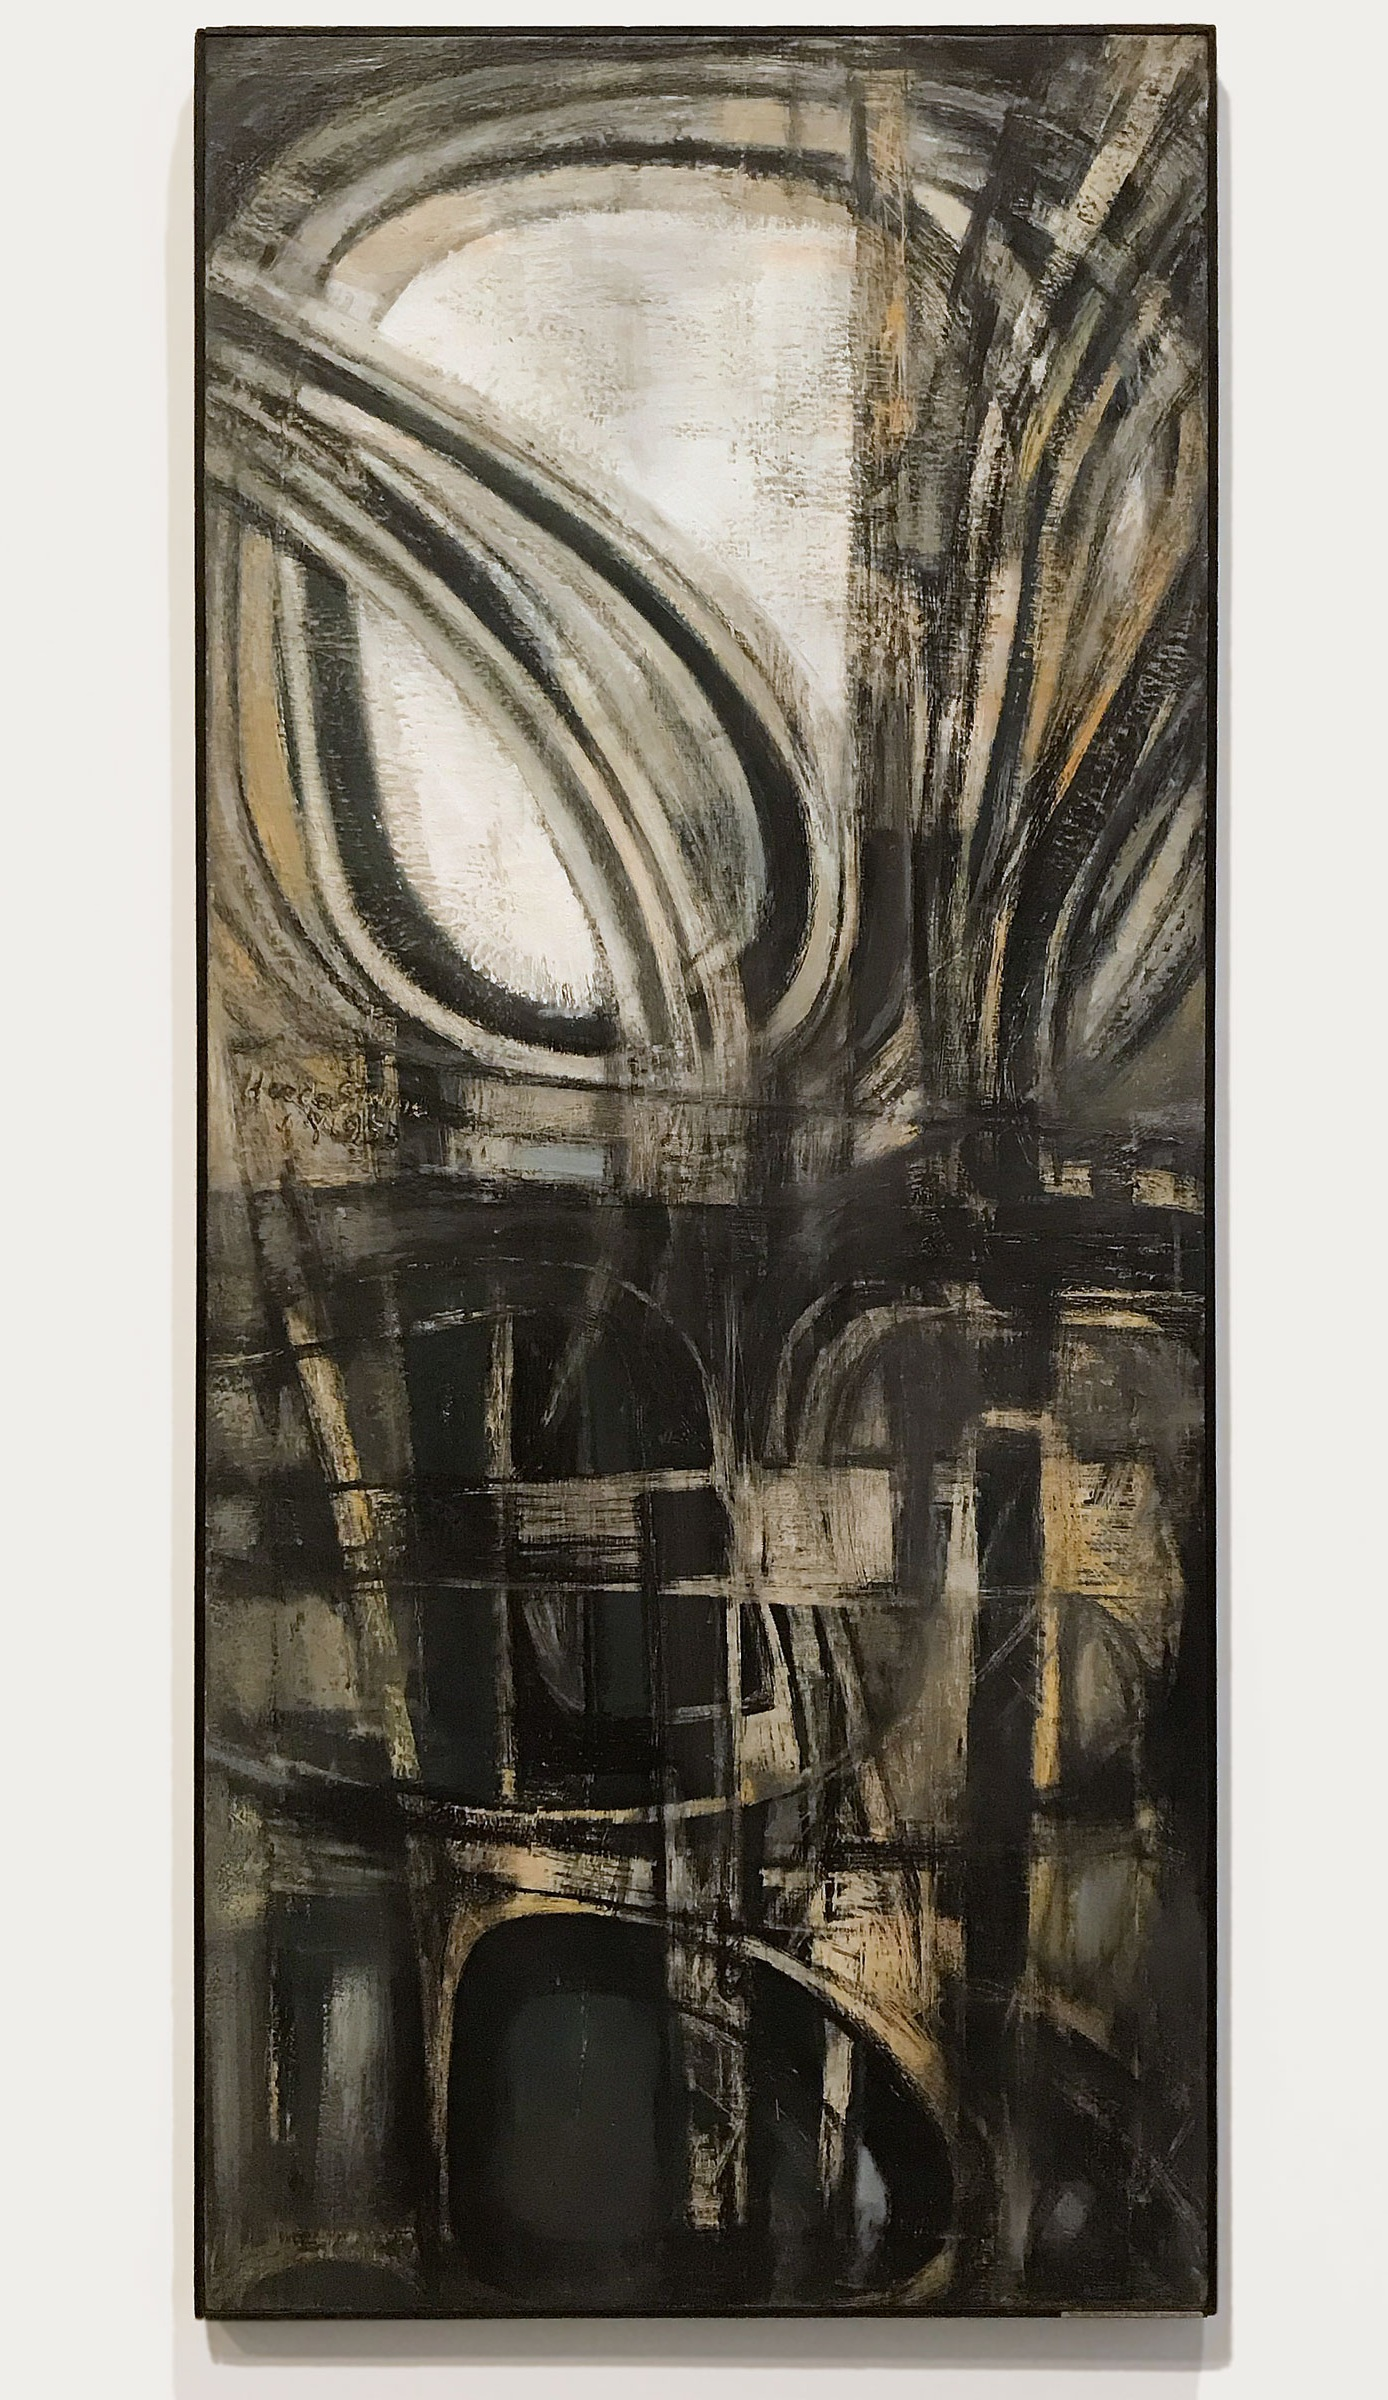 Hedda Sterne,  New York #2 , 1953, oil on canvas, 78 × 34-1/8 x 1 in. (198.1 × 86.7 x 2.5 cm); Collection of The Metropolitan Museum of Art, New York; Purchase, Gift of Samuel Dretzin, by exchange, Bequest of Gioconda King, by exchange, Rogers Fund, by exchange, Funds from various donors, by exchange, and Gift of Chauncey Stillman, by exchange, 2017 | © The Hedda Sterne Foundation, Inc. | Licensed by ARS, New York, NY